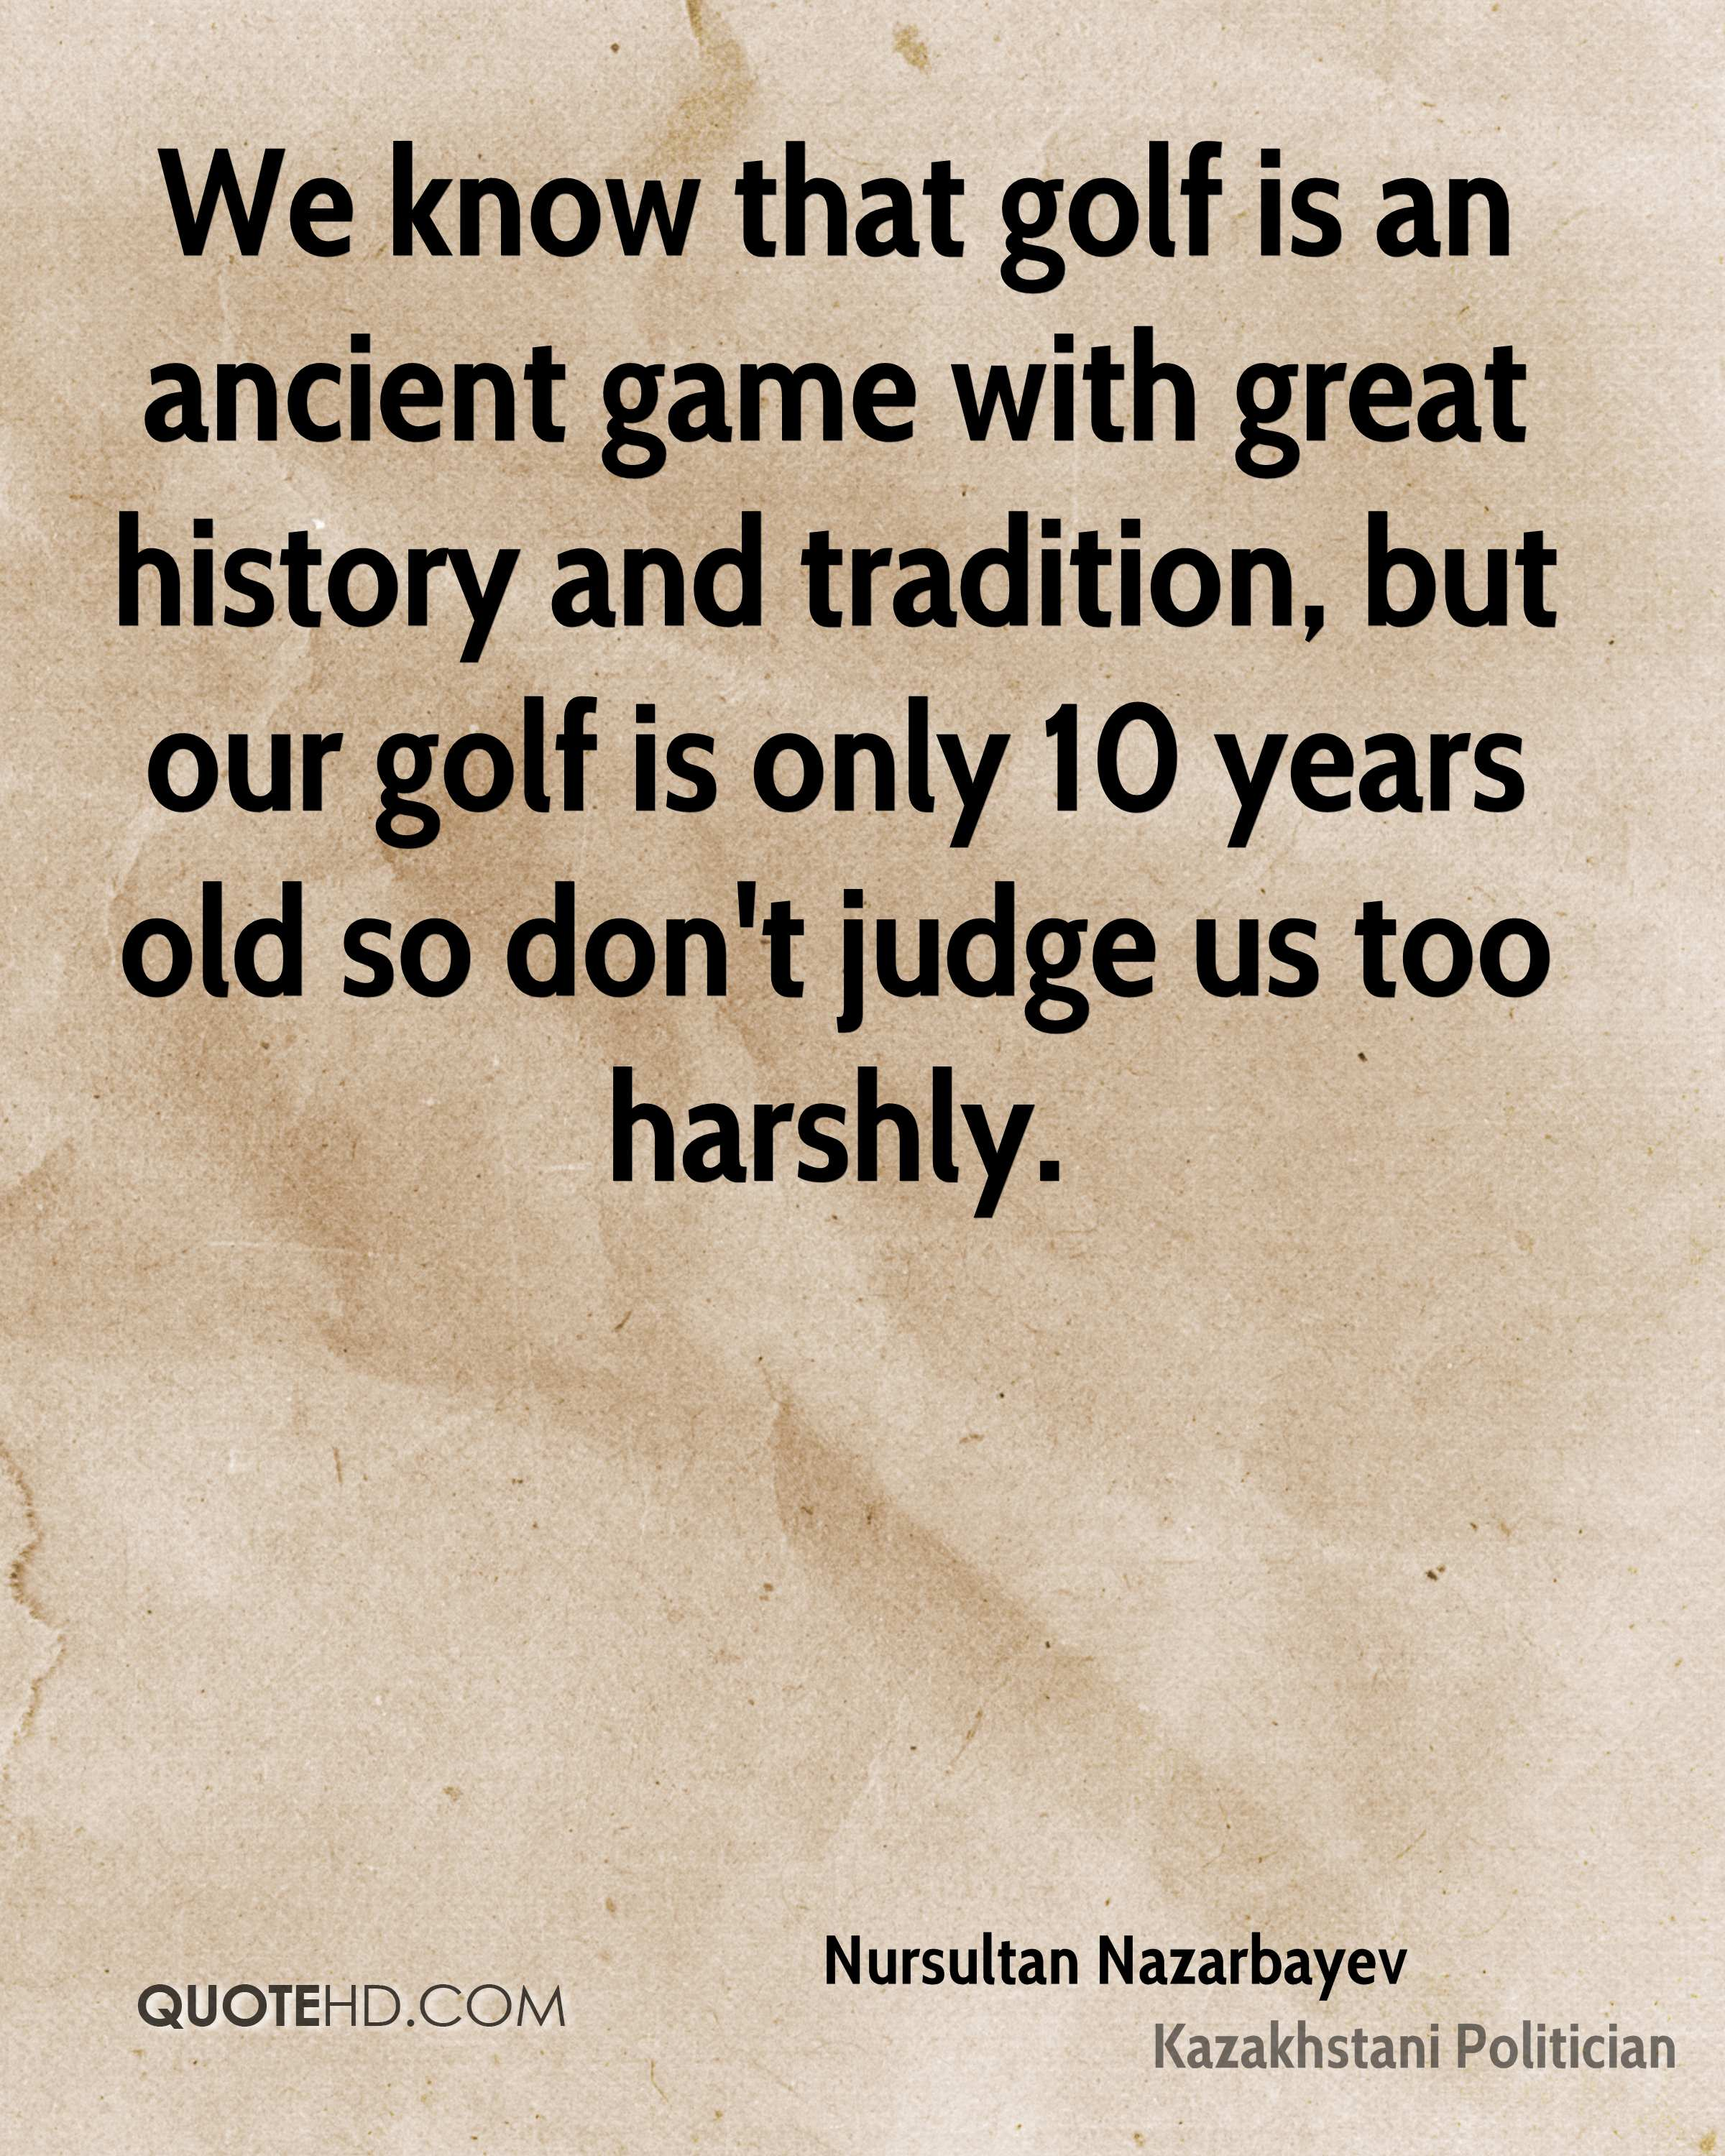 We know that golf is an ancient game with great history and tradition, but our golf is only 10 years old so don't judge us too harshly.